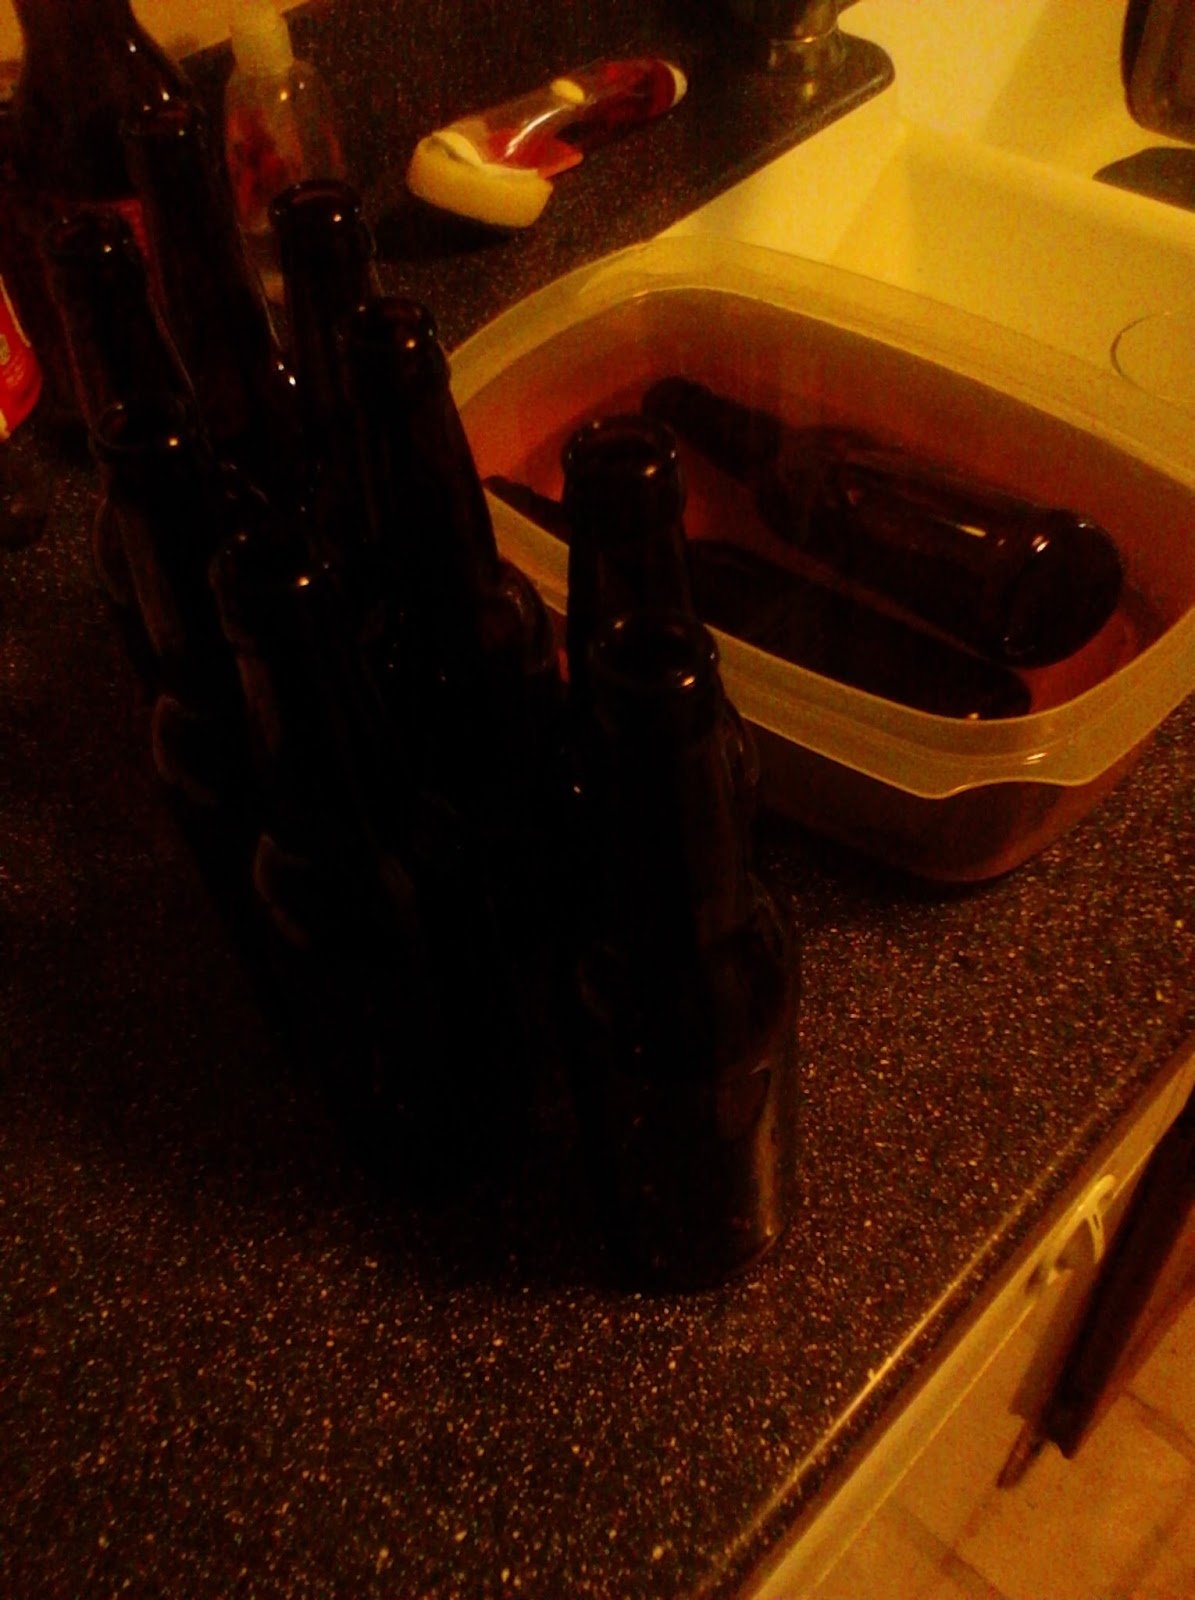 Sanitizing beer bottles